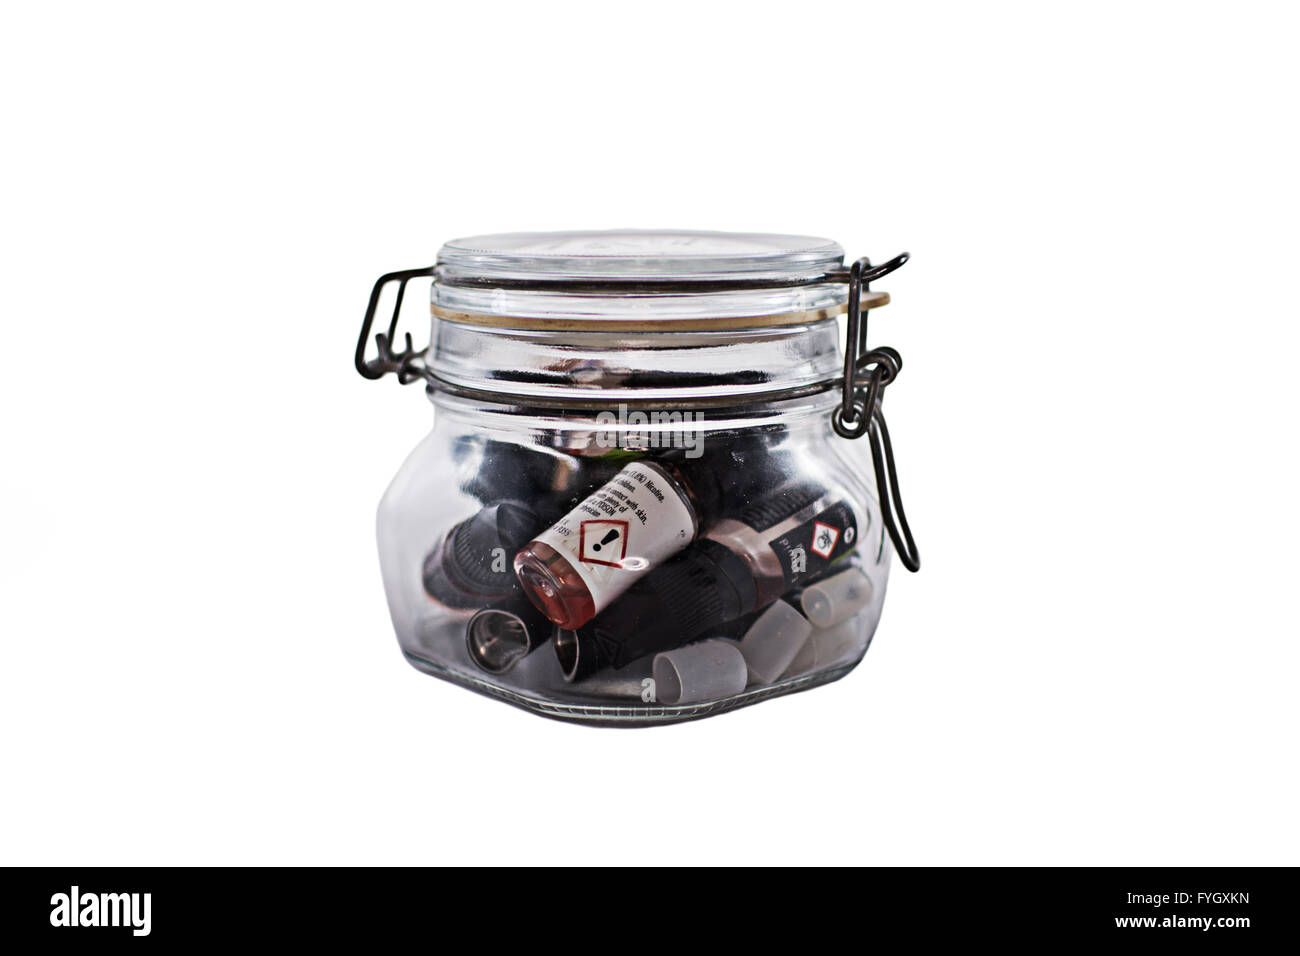 A clip jar full of e-liquid - Stock Image